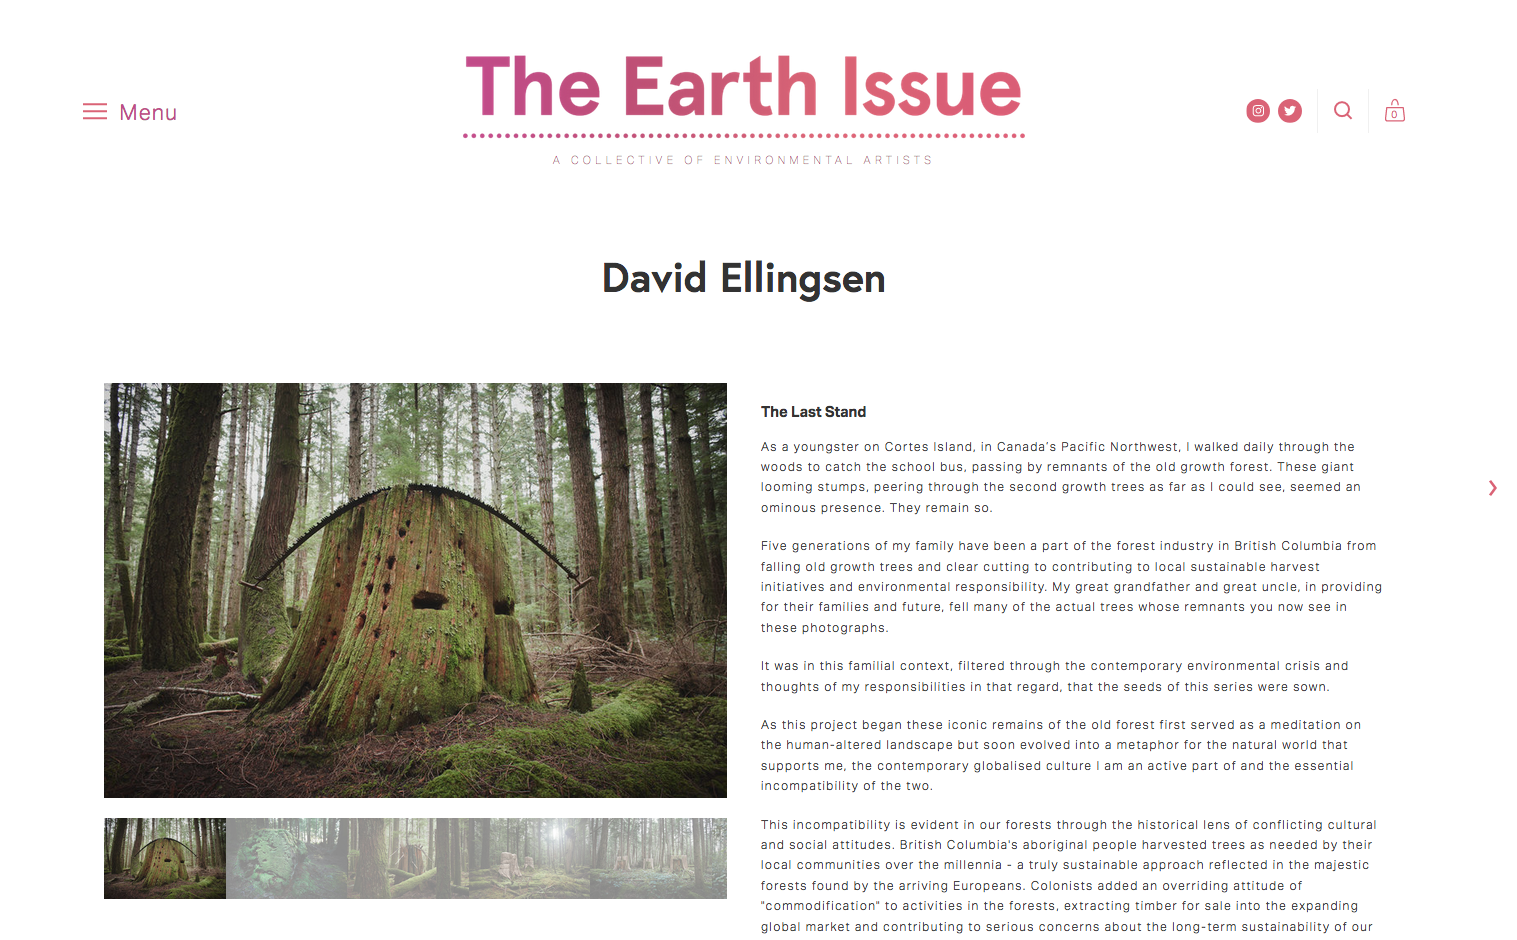 the-earth-issue-david-ellingsen-the-last-stand